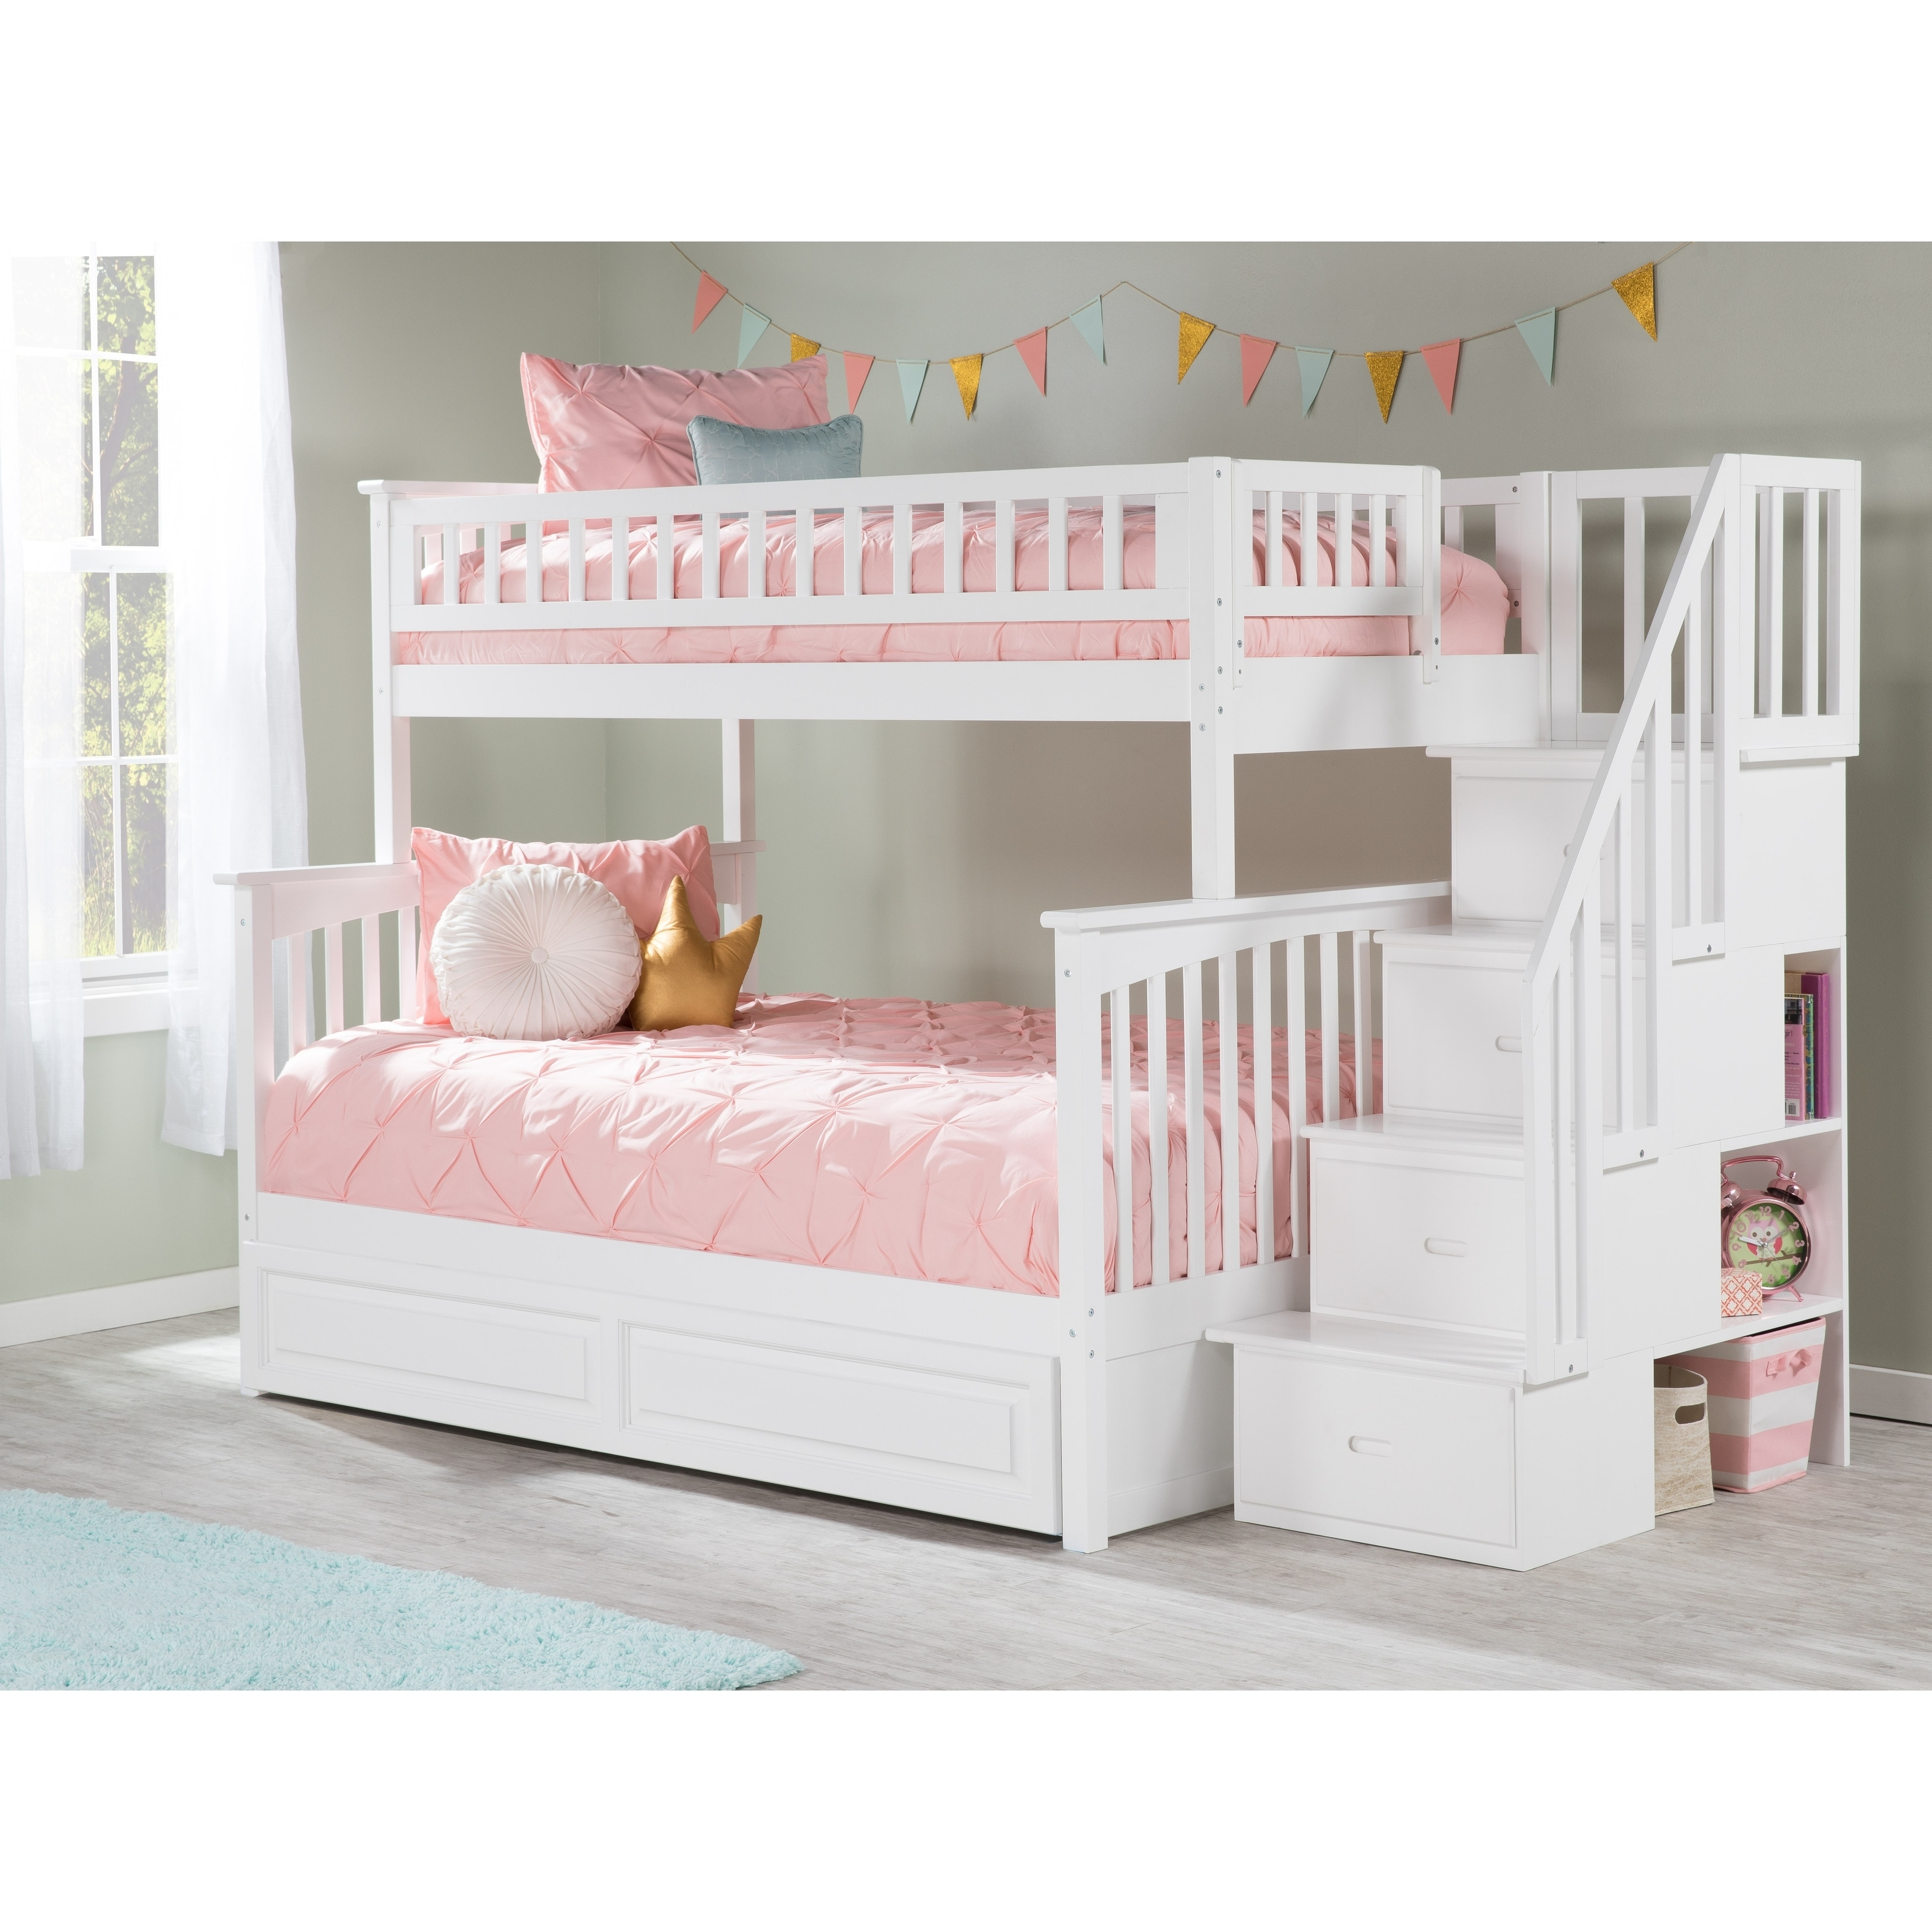 Picture of: Columbia Staircase Bunk Bed Twin Over Full With Twin Size Raised Panel Trundle Bed In White Overstock 13049111